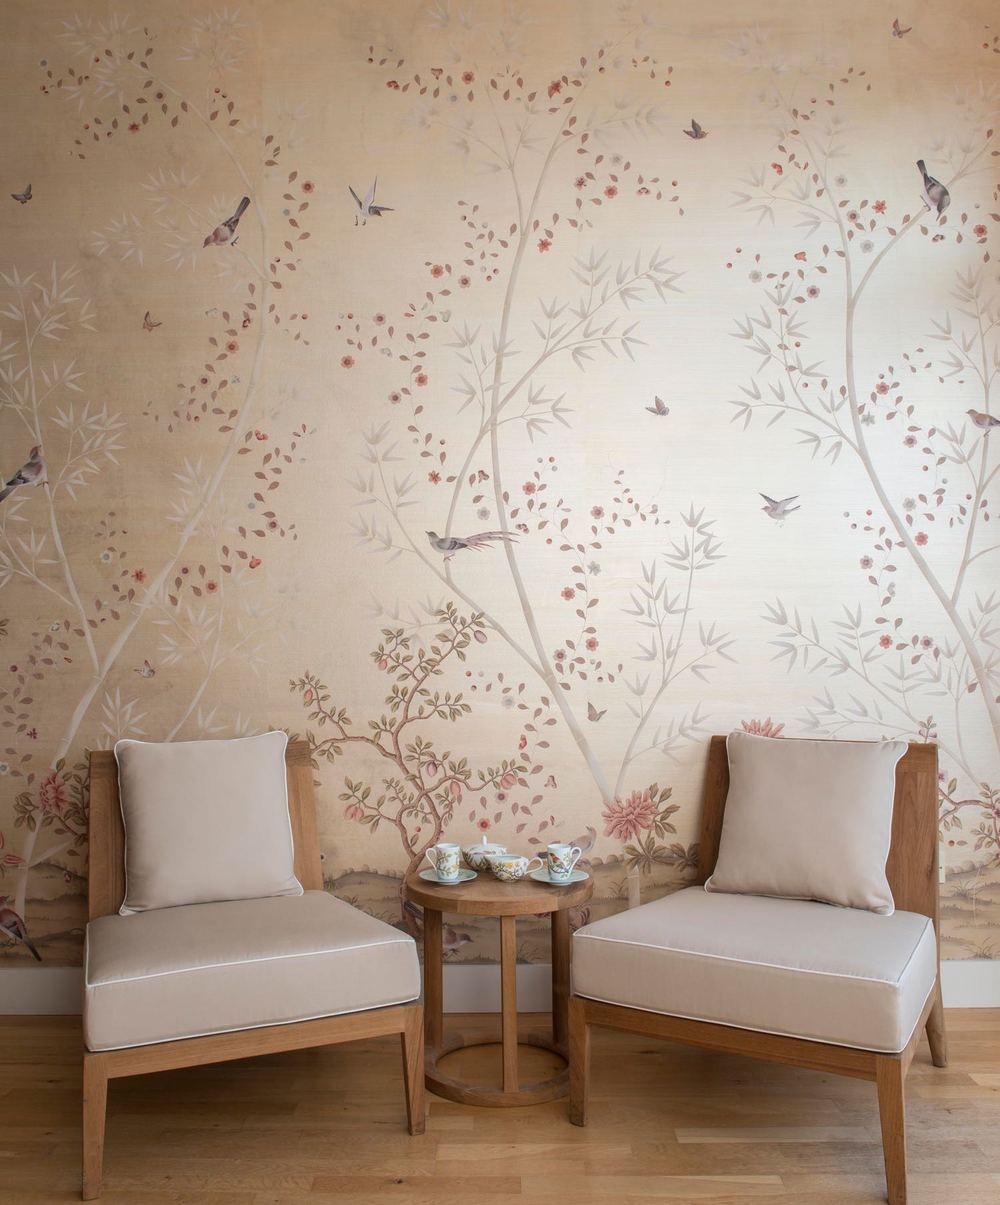 CLOTH & KIND // Inspired: Fromenta's Printed Wallpapers